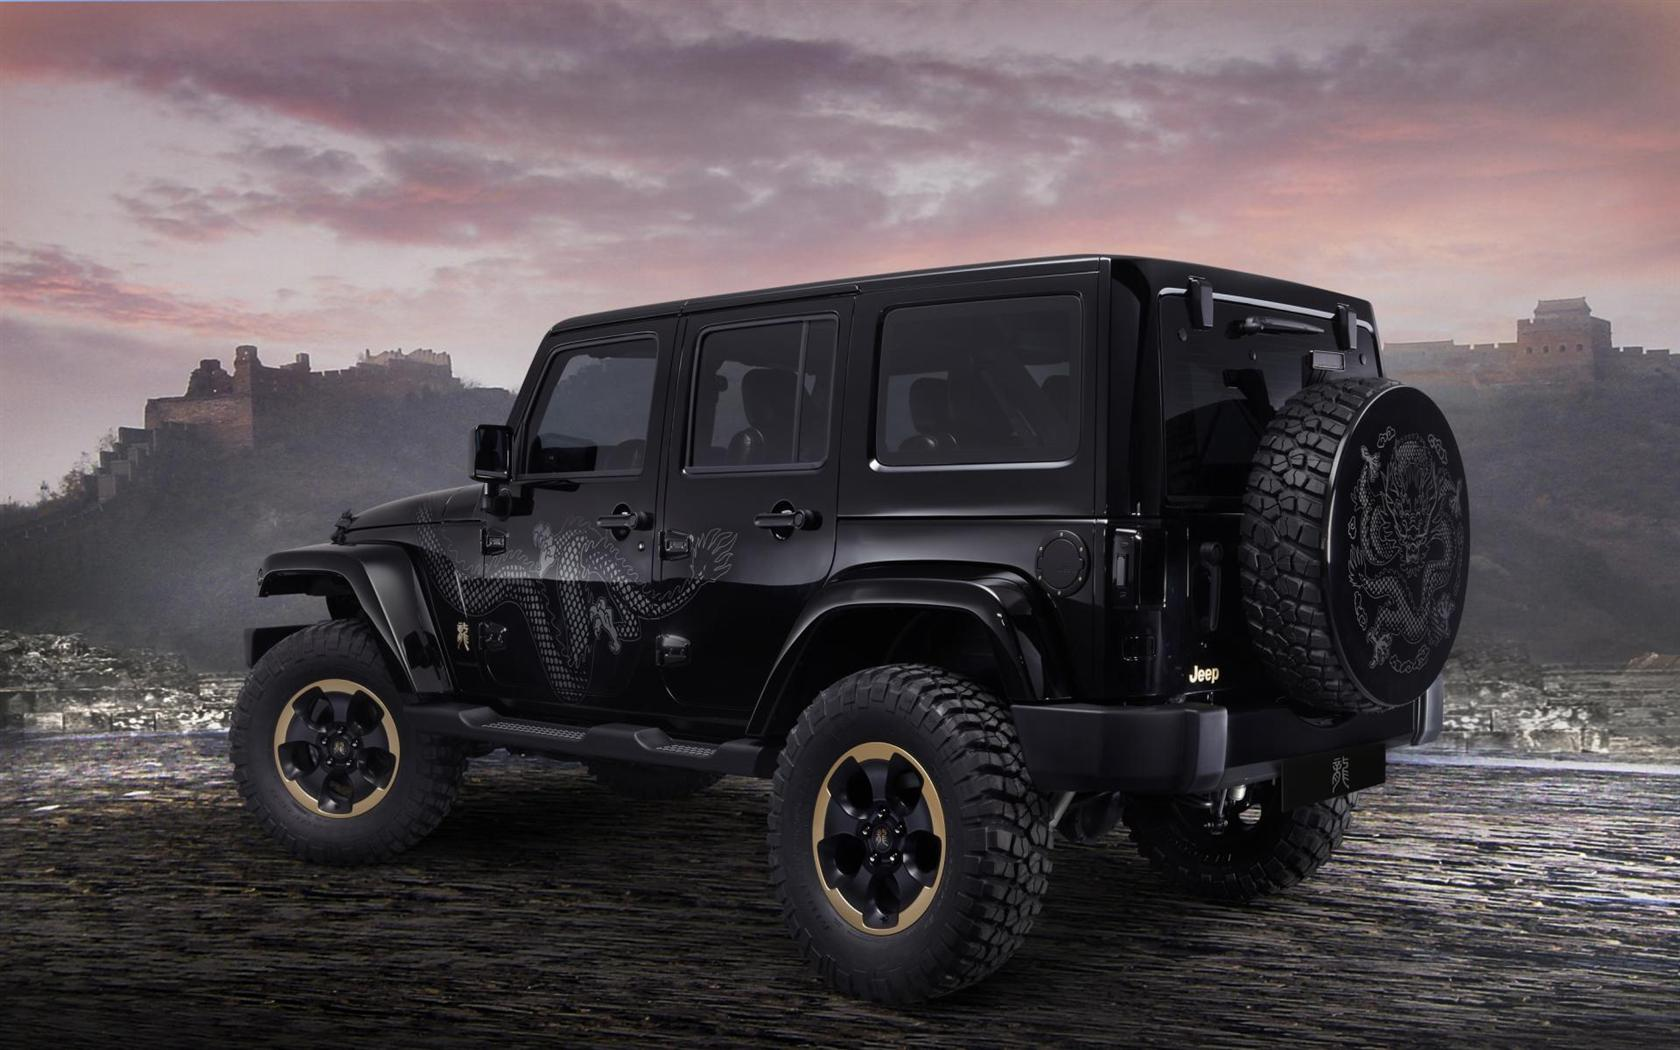 2012 Jeep Wrangler Dragon Design Concept